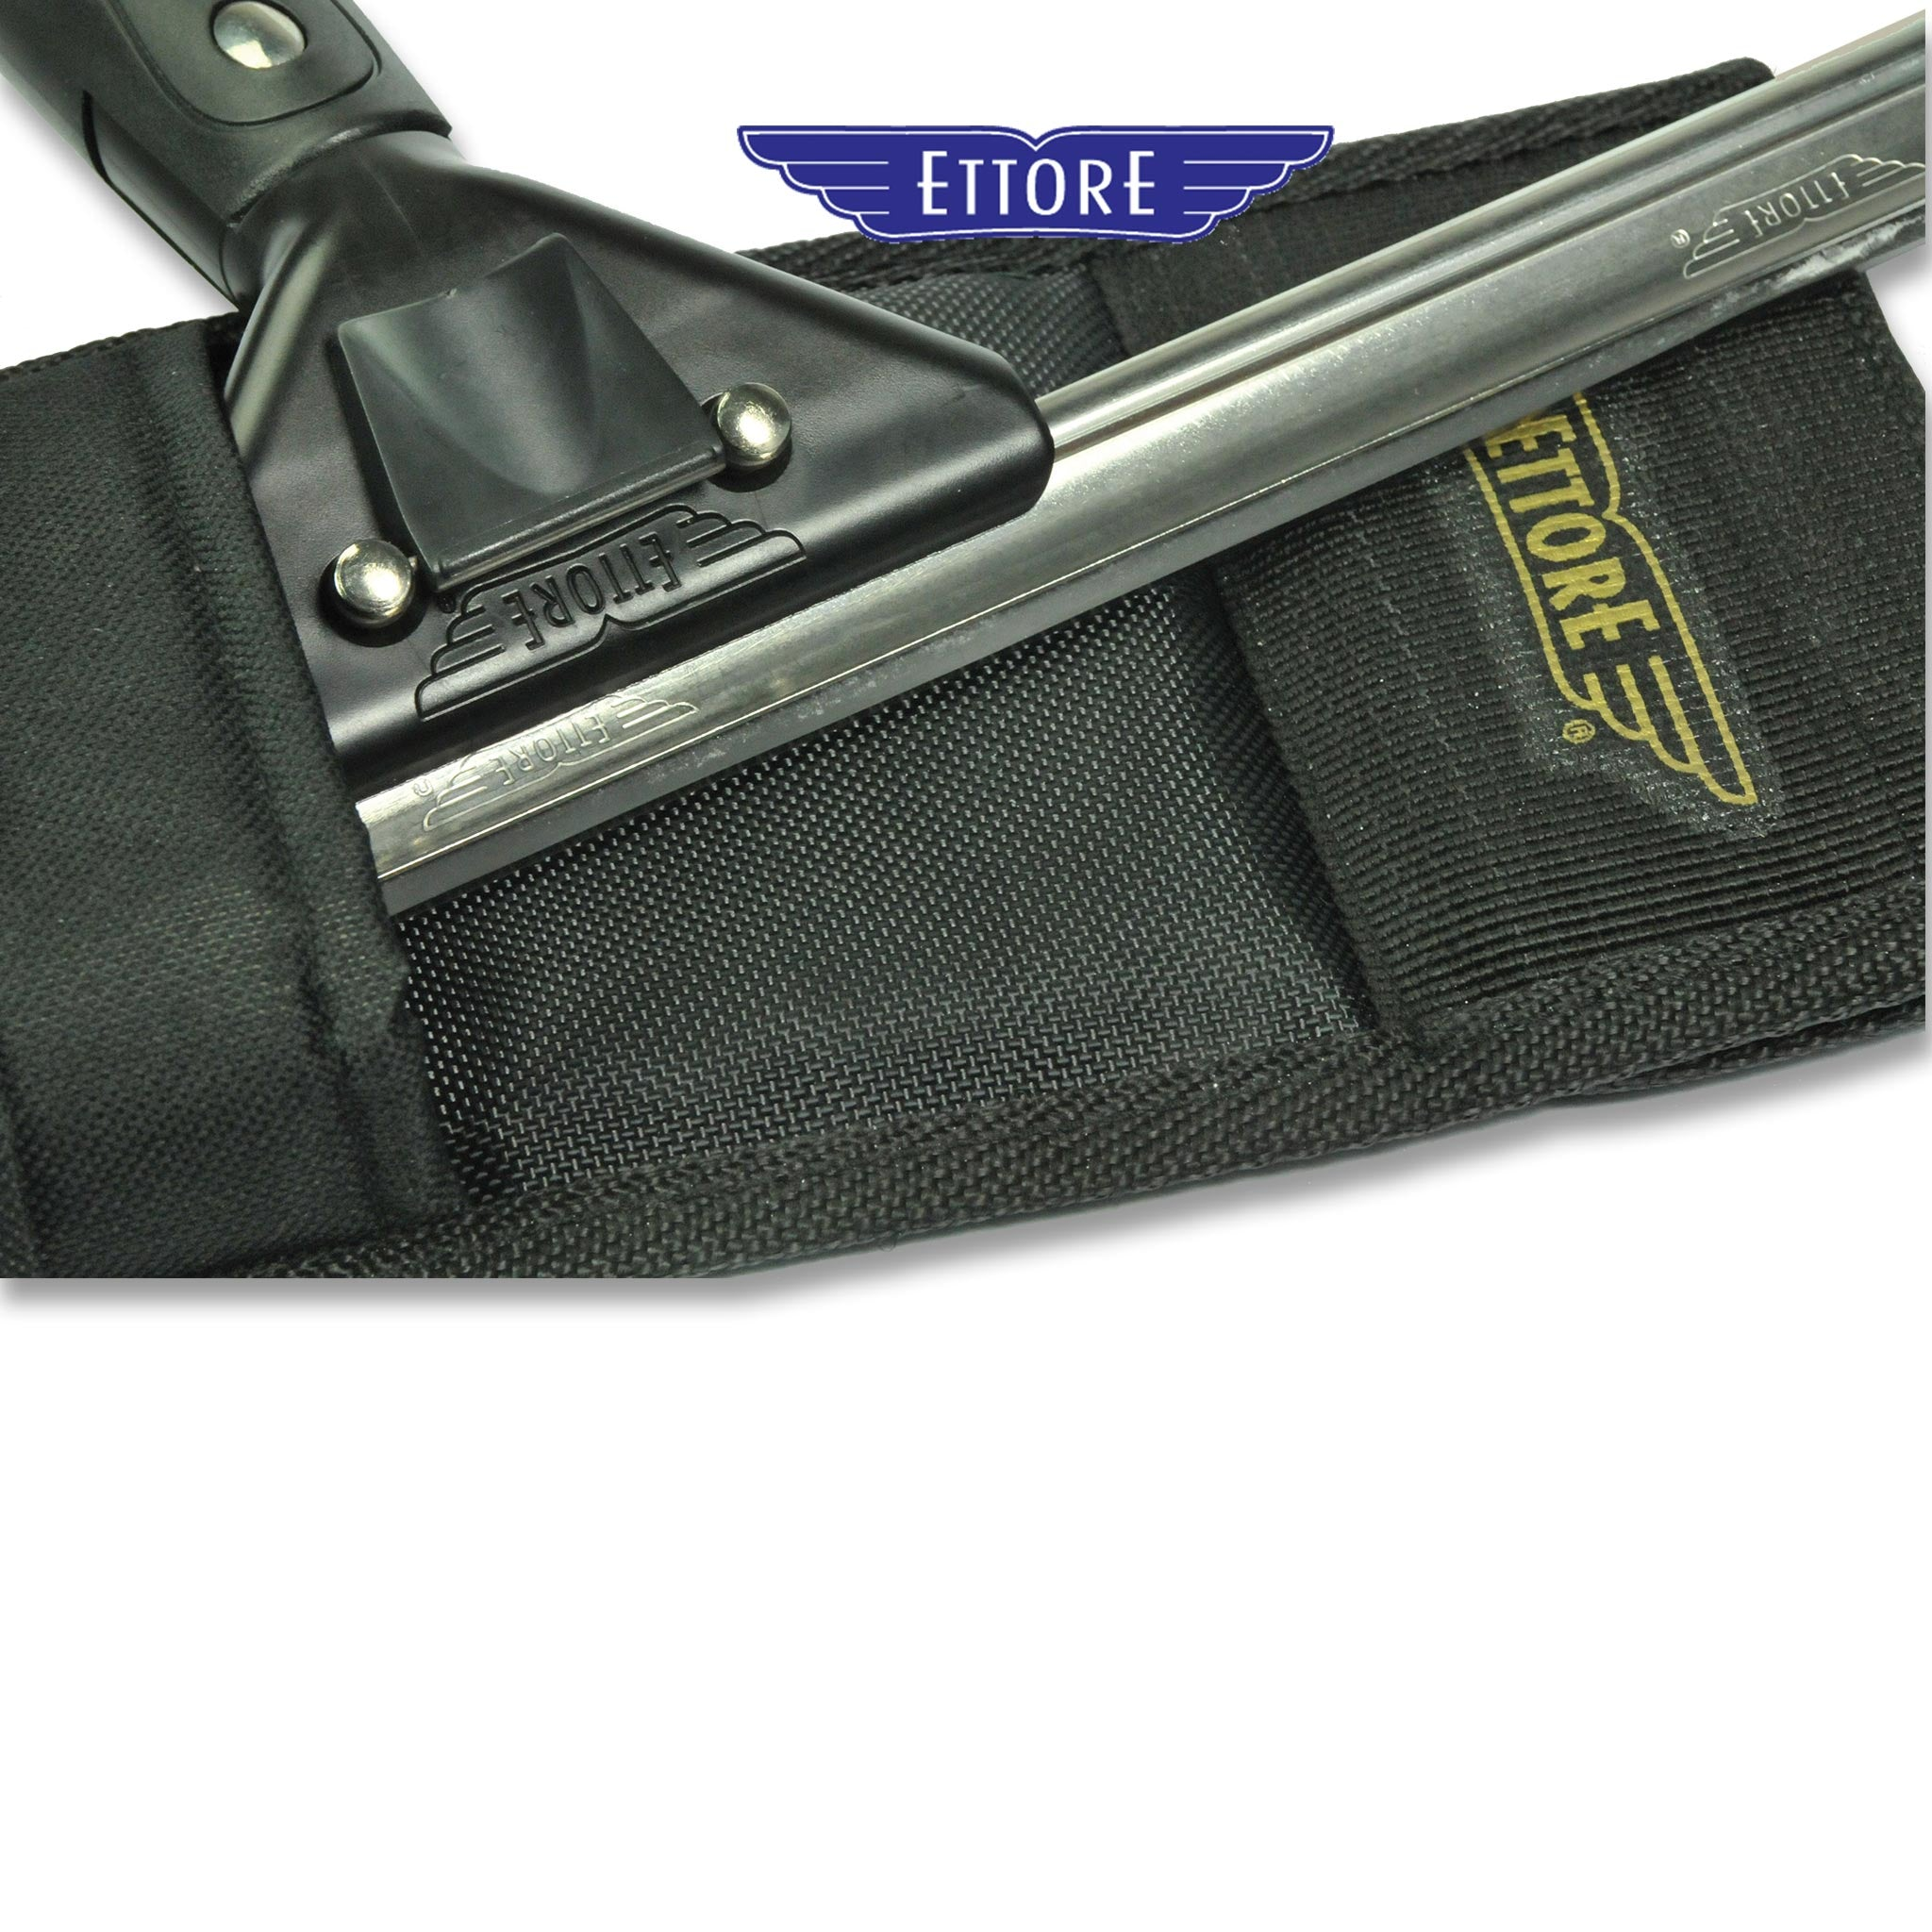 Ettore Nylon Holster - Double